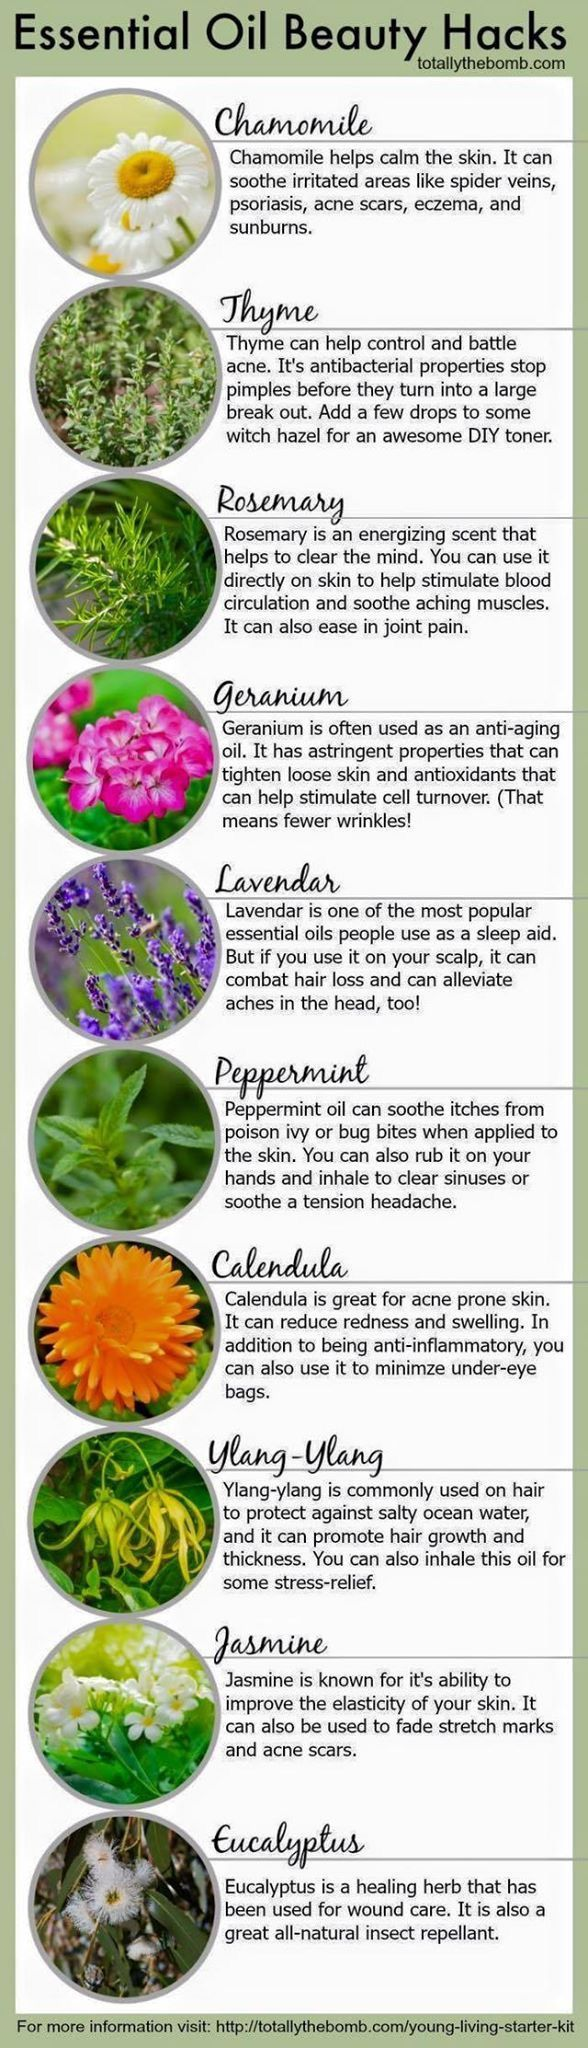 Essential oil for skin